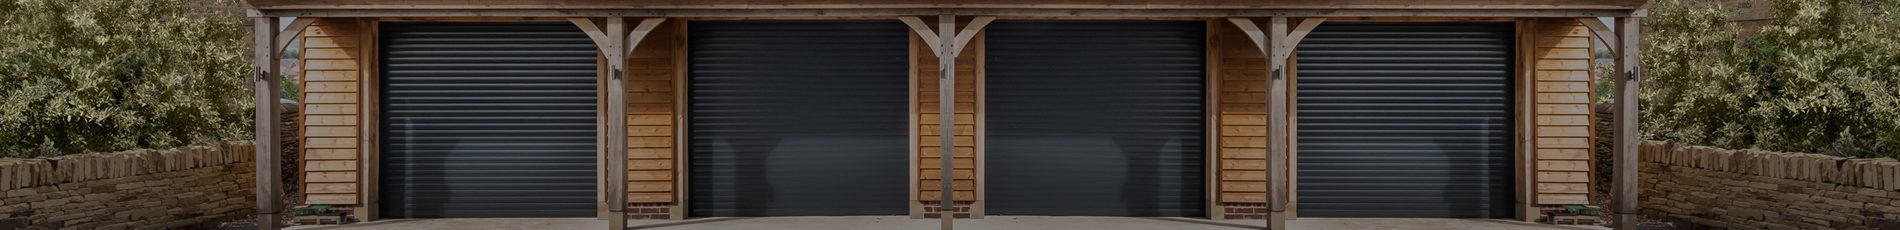 Roller Garage Doors Ely - Franchise, Installer and Stockists Opportunity